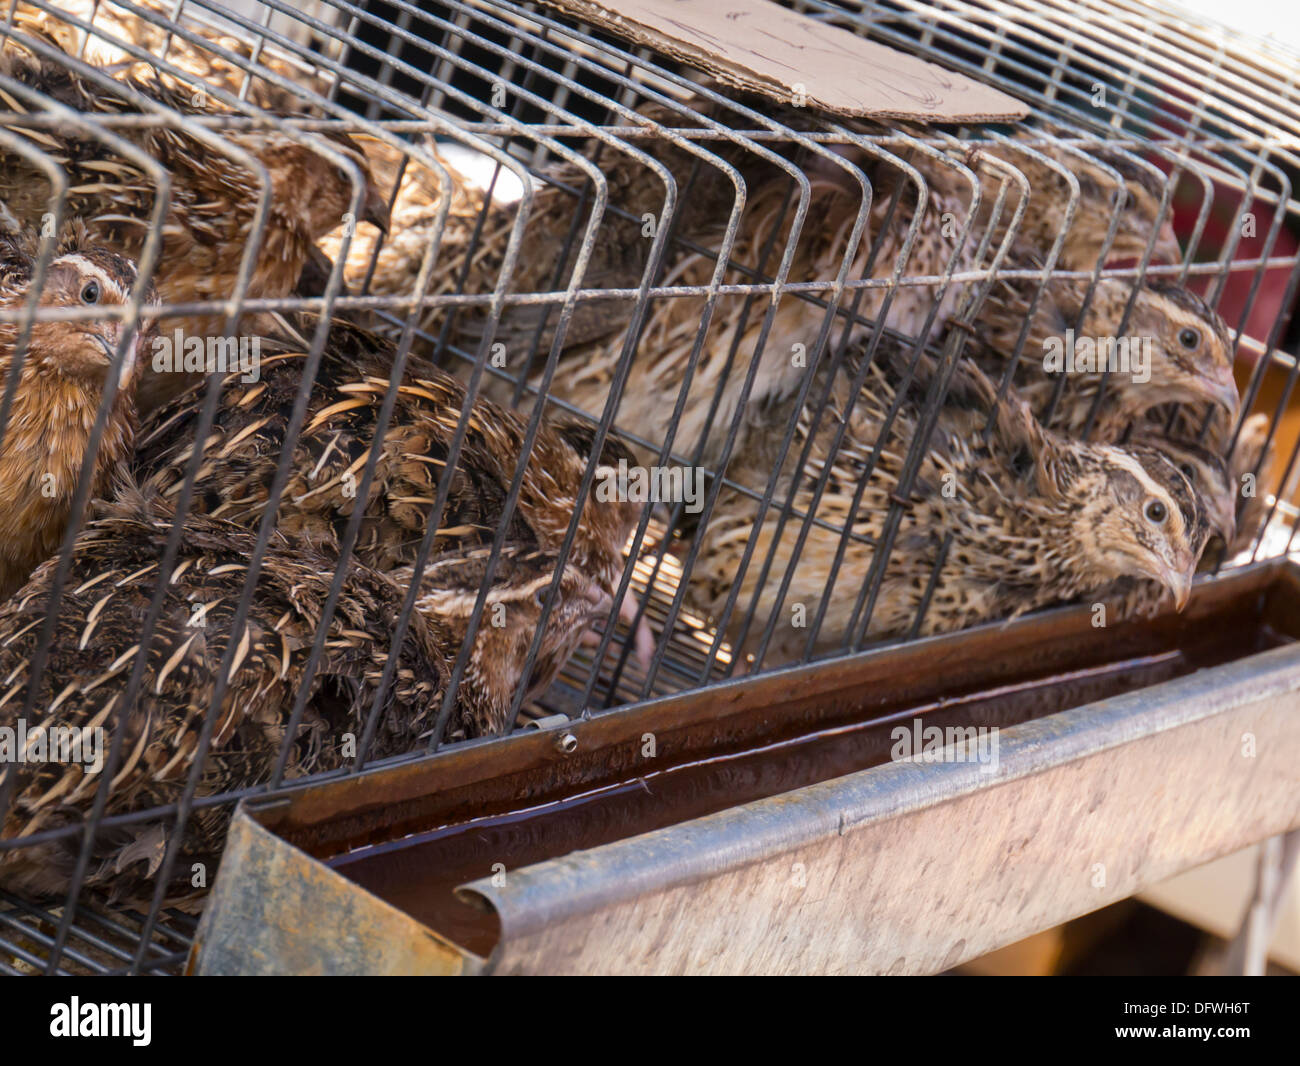 Portugal , Algarve , Loule market , small birds chicks grouse in cage for sale water trough - Stock Image